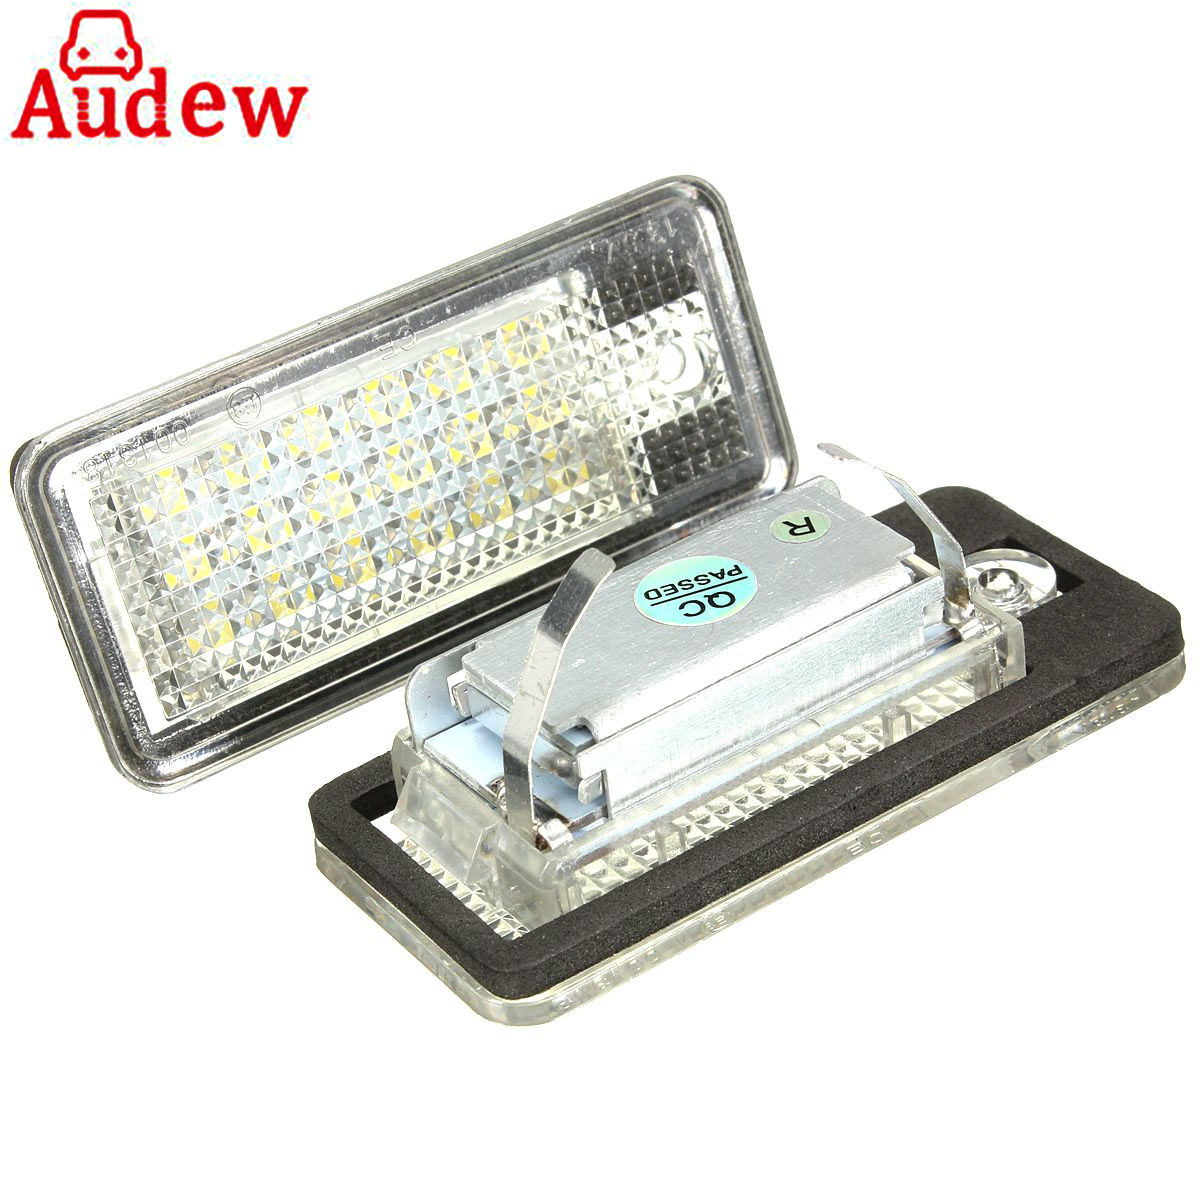 2Pcs Car Error Free 18 LED License Number Plate Light White Lamp For Audi A3 S3 A4 S4 B6 B7 A6 S6 A8 Q7 white car no canbus error 18smd led license number plate light lamp for audi a3 s3 a4 s4 b6 b7 a6 s6 a8 q7 147 page 9